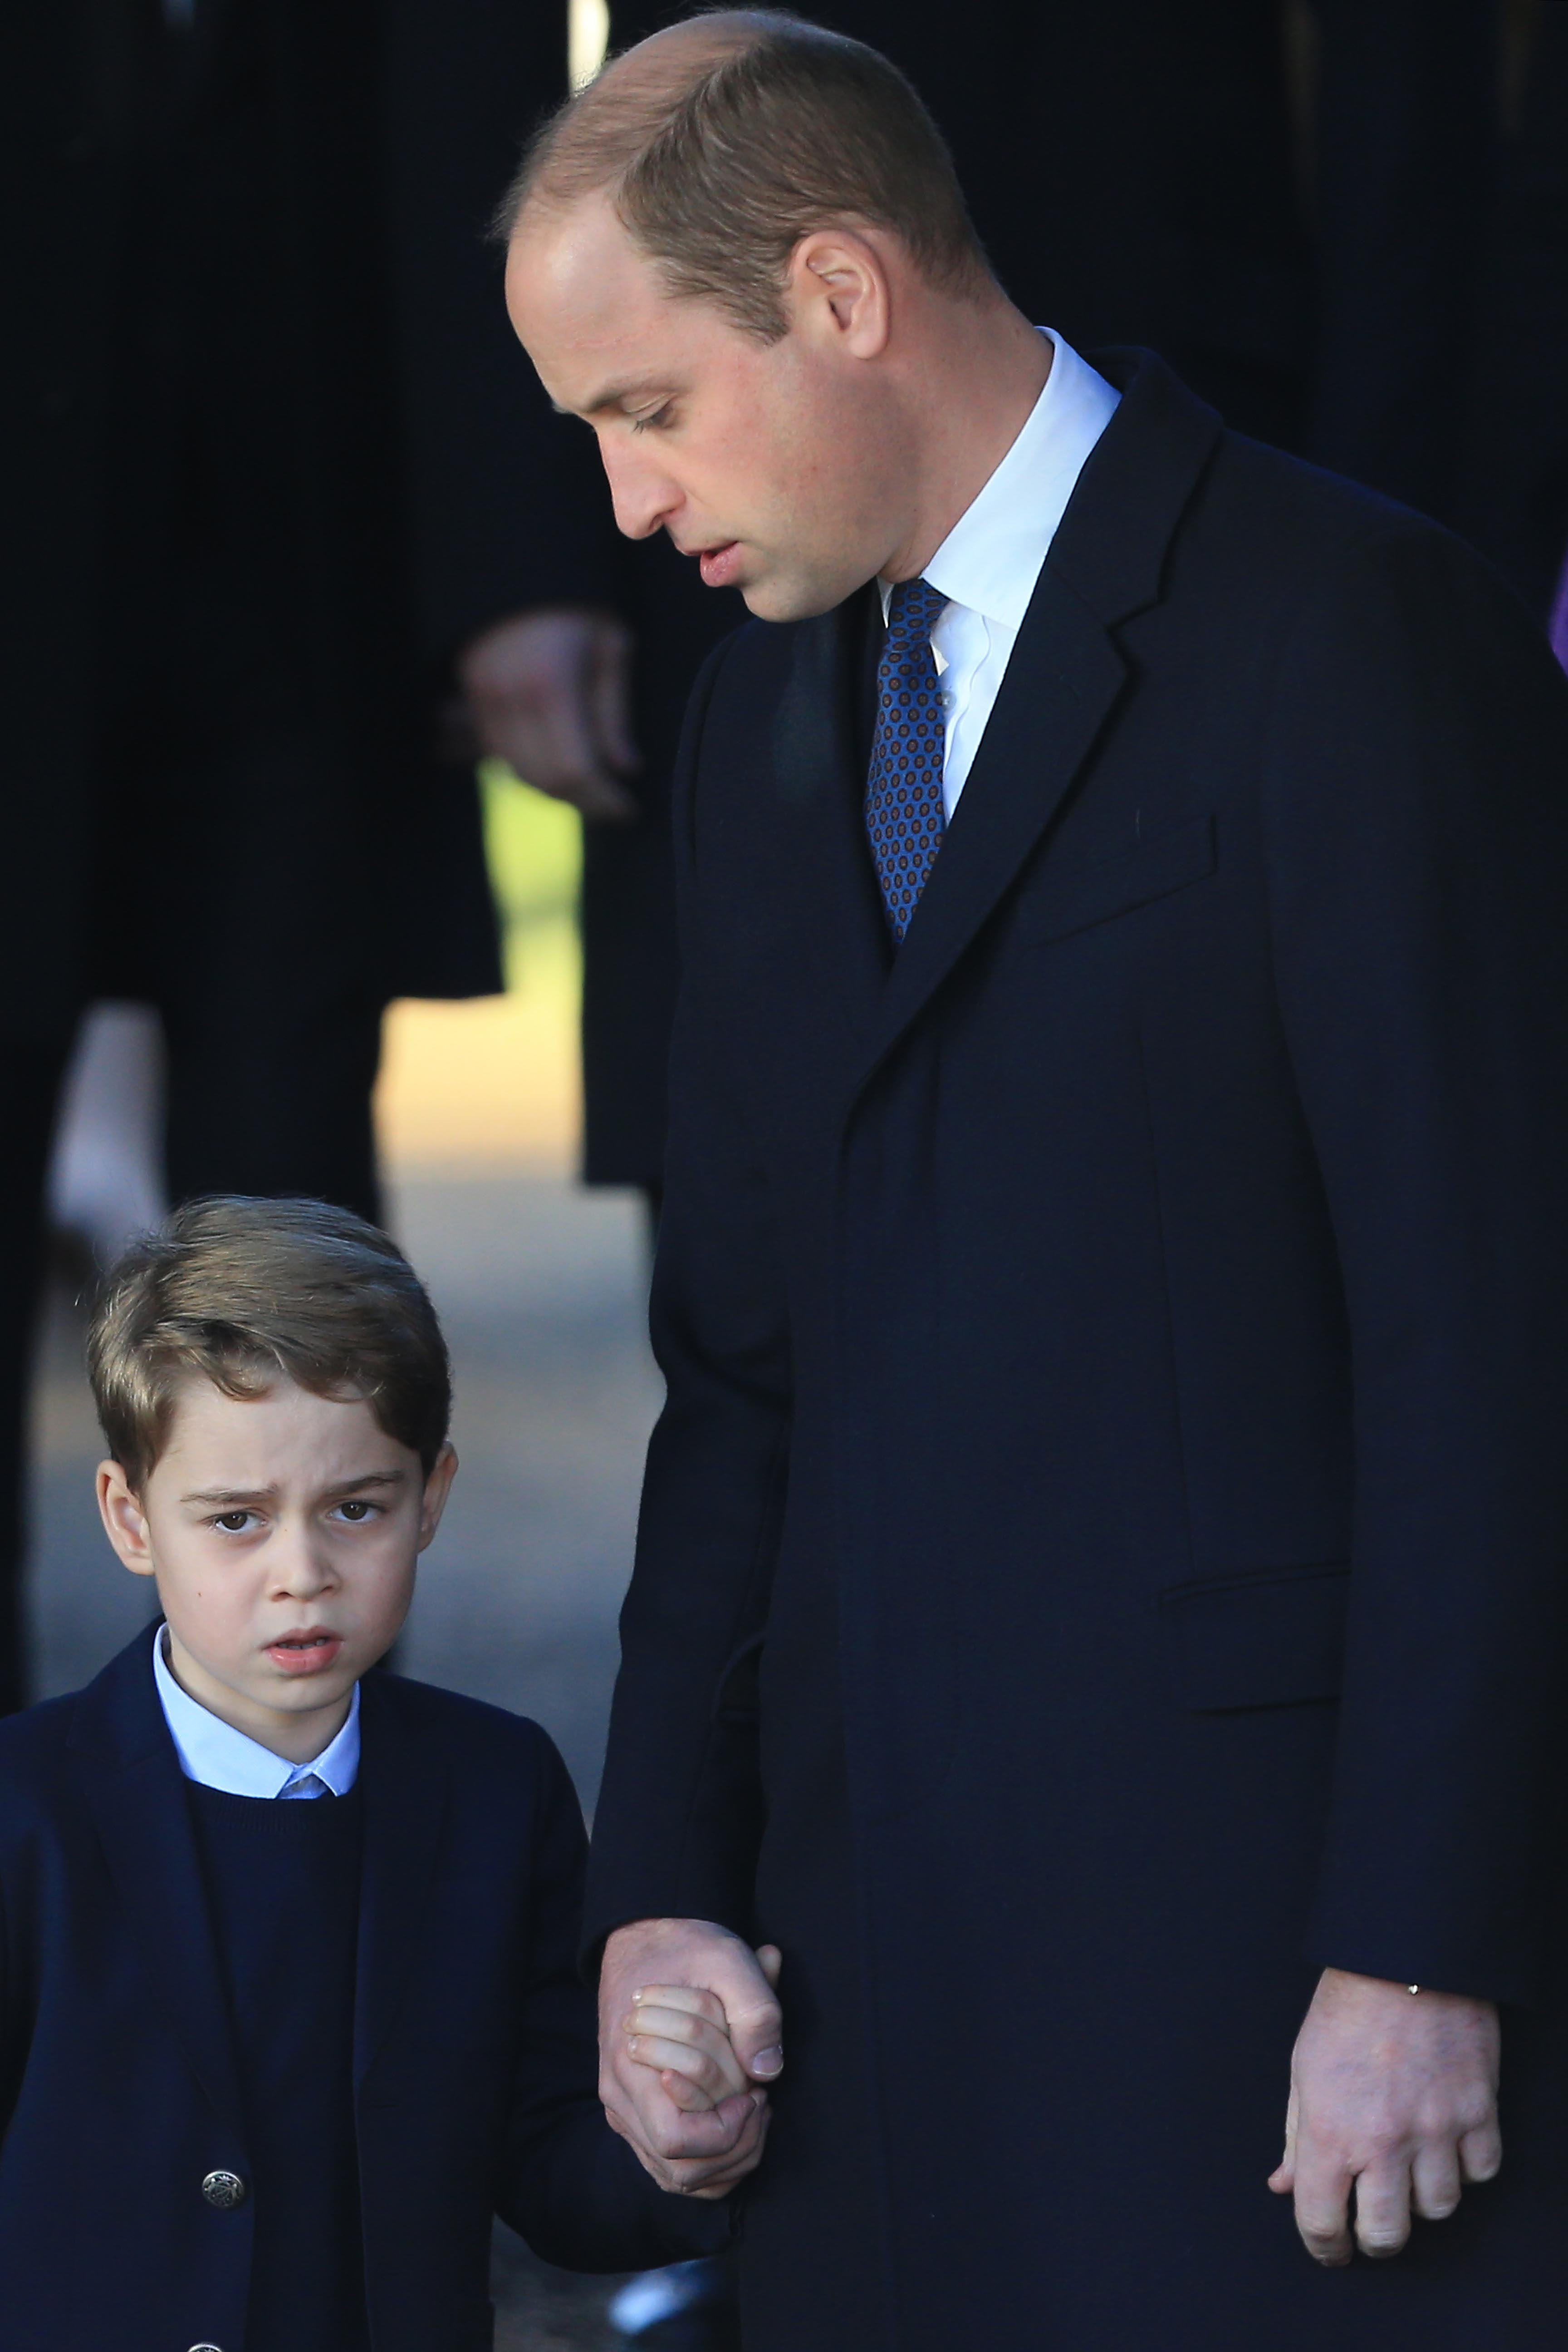 Prince William and Prince George attend the Christmas Day Church Service in King's Lynn, United Kingdom on December 25, 2019 | Photo: Getty Images